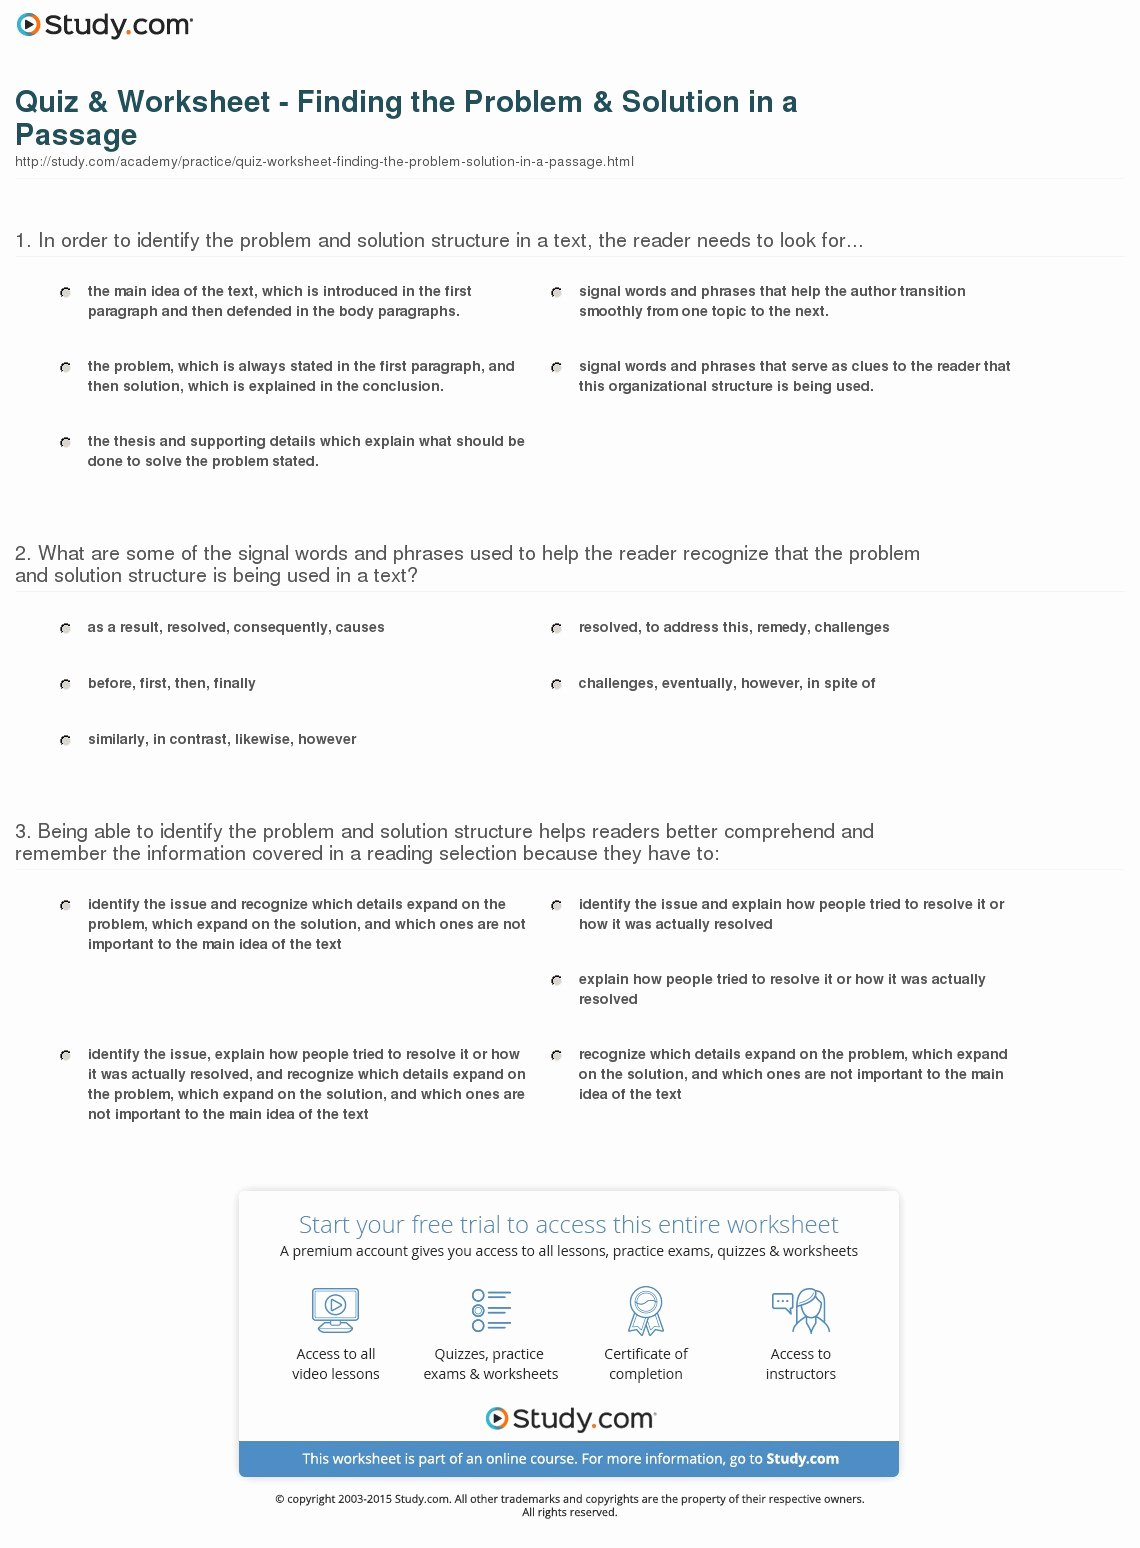 Problem and solution Worksheet Awesome Quiz & Worksheet Finding the Problem & solution In A